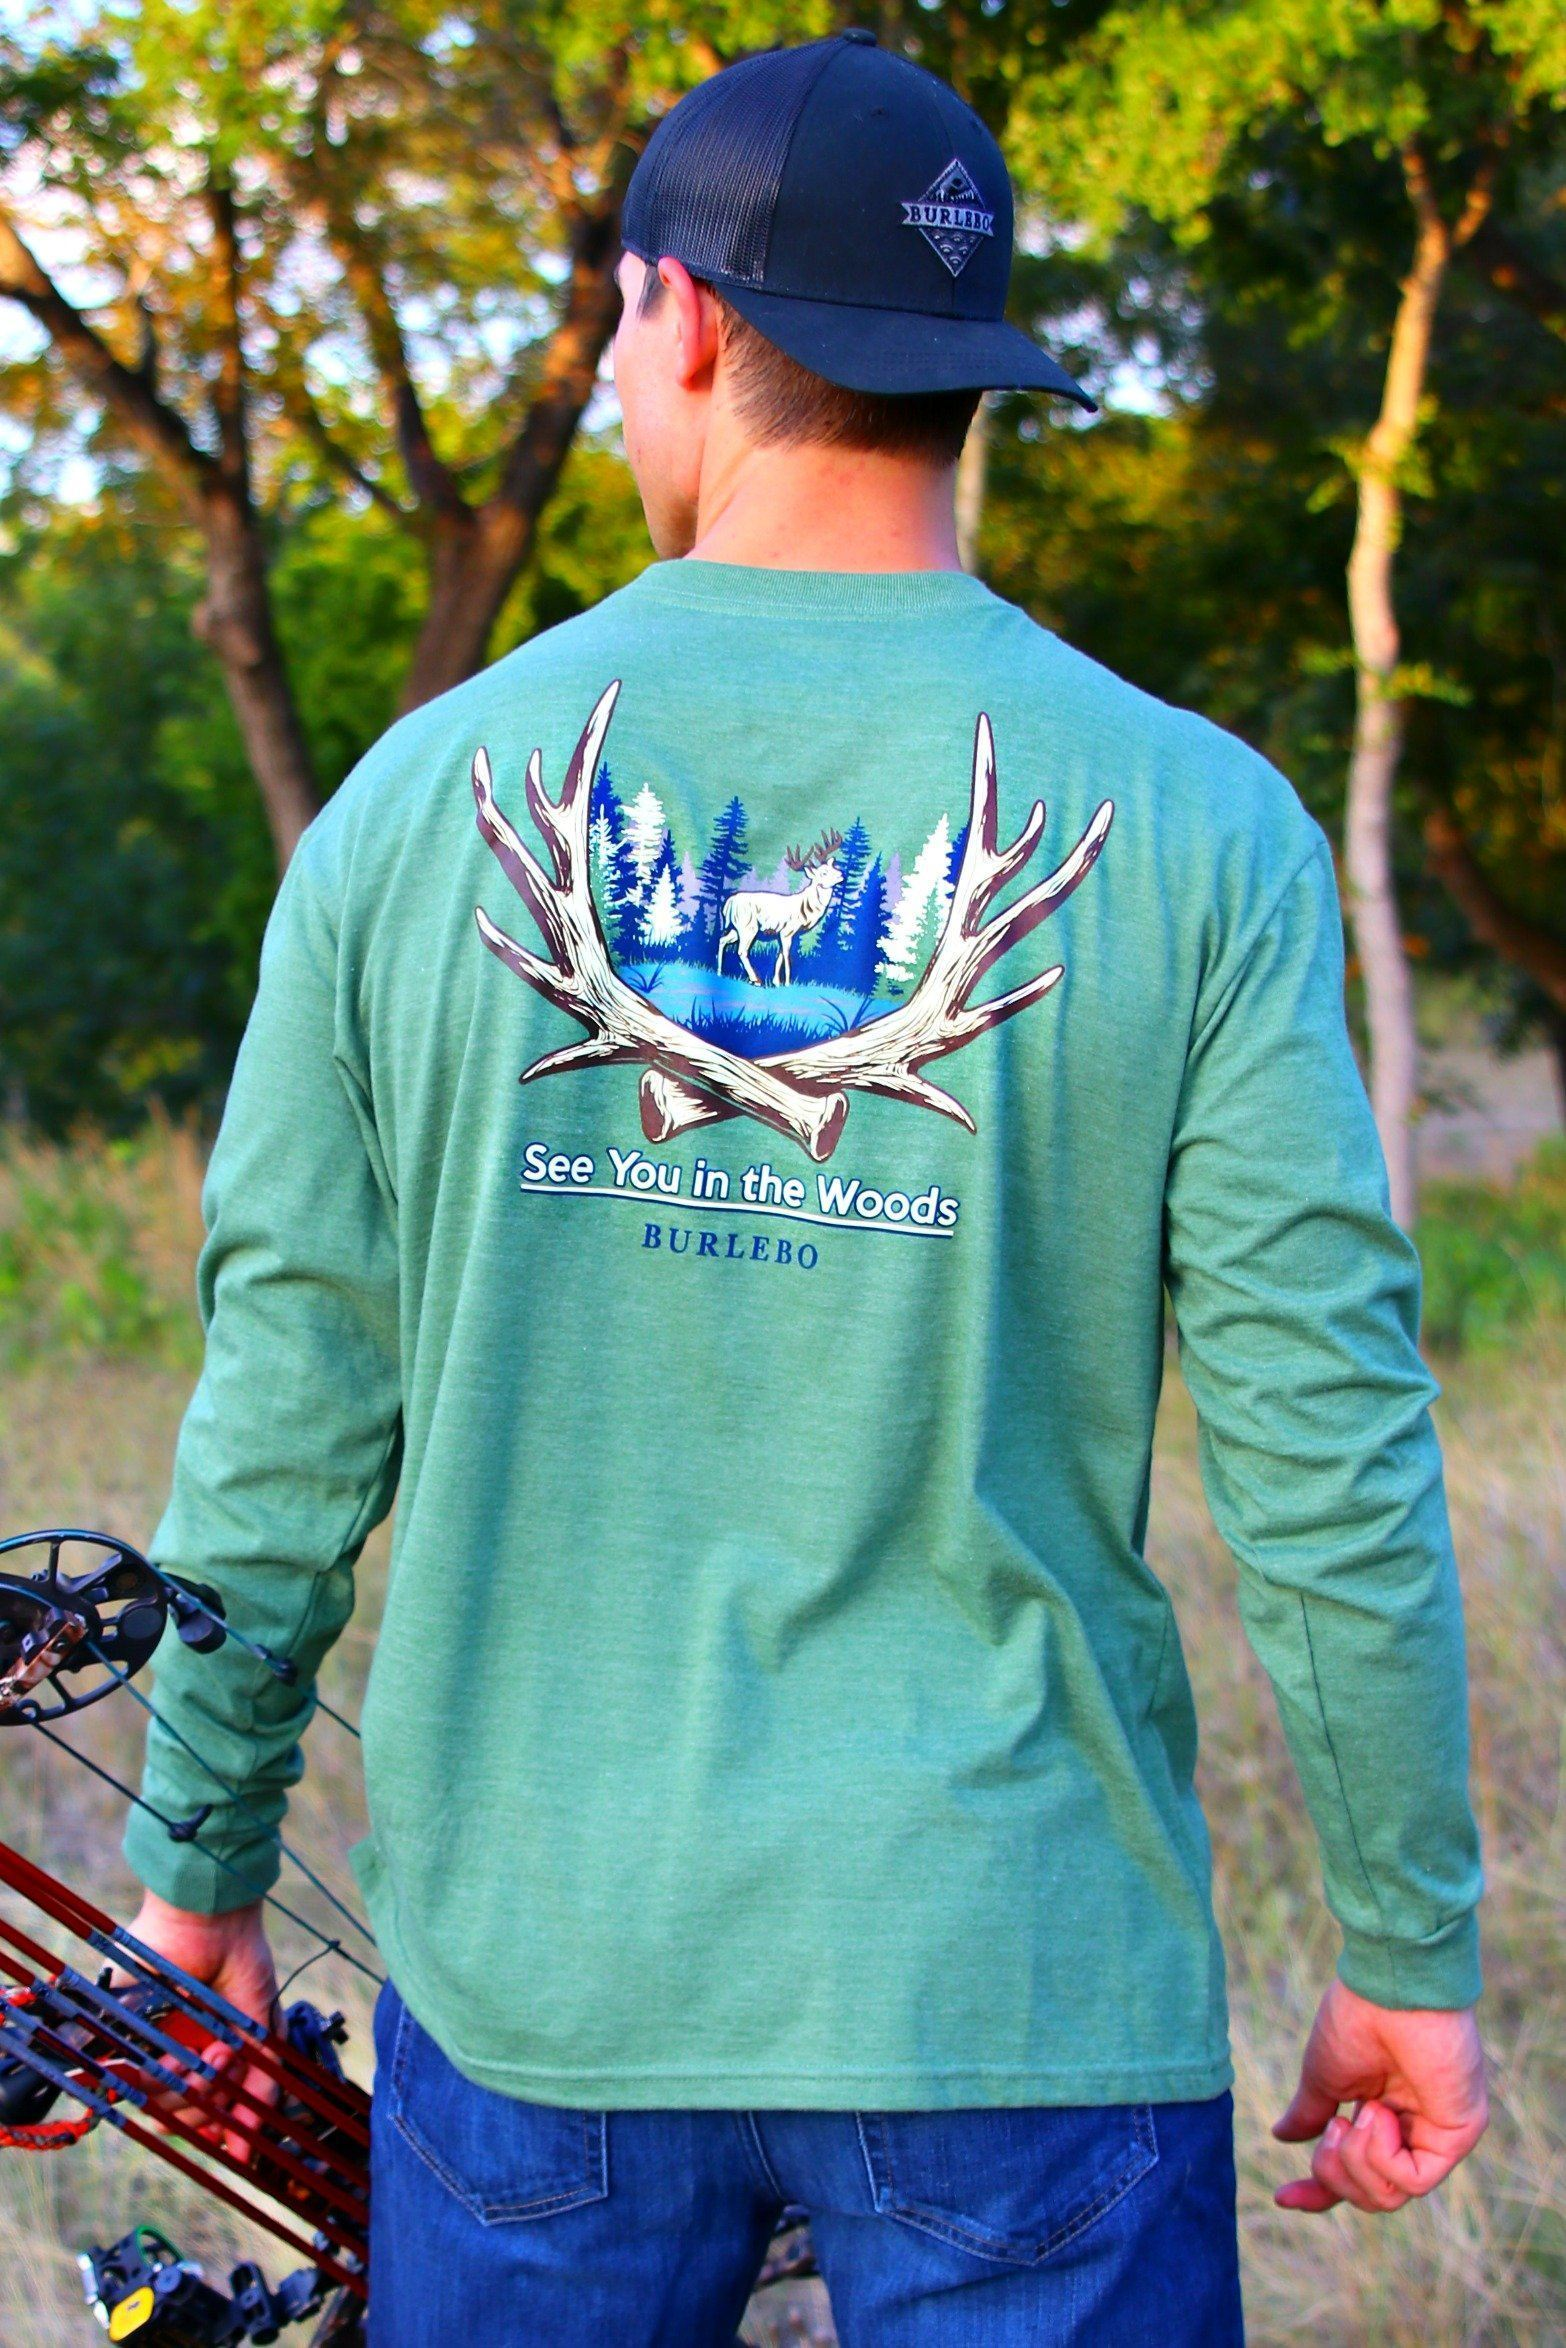 BURLEBO SEE YOU IN THE WOODS LONG SLEEVE T-SHIRT